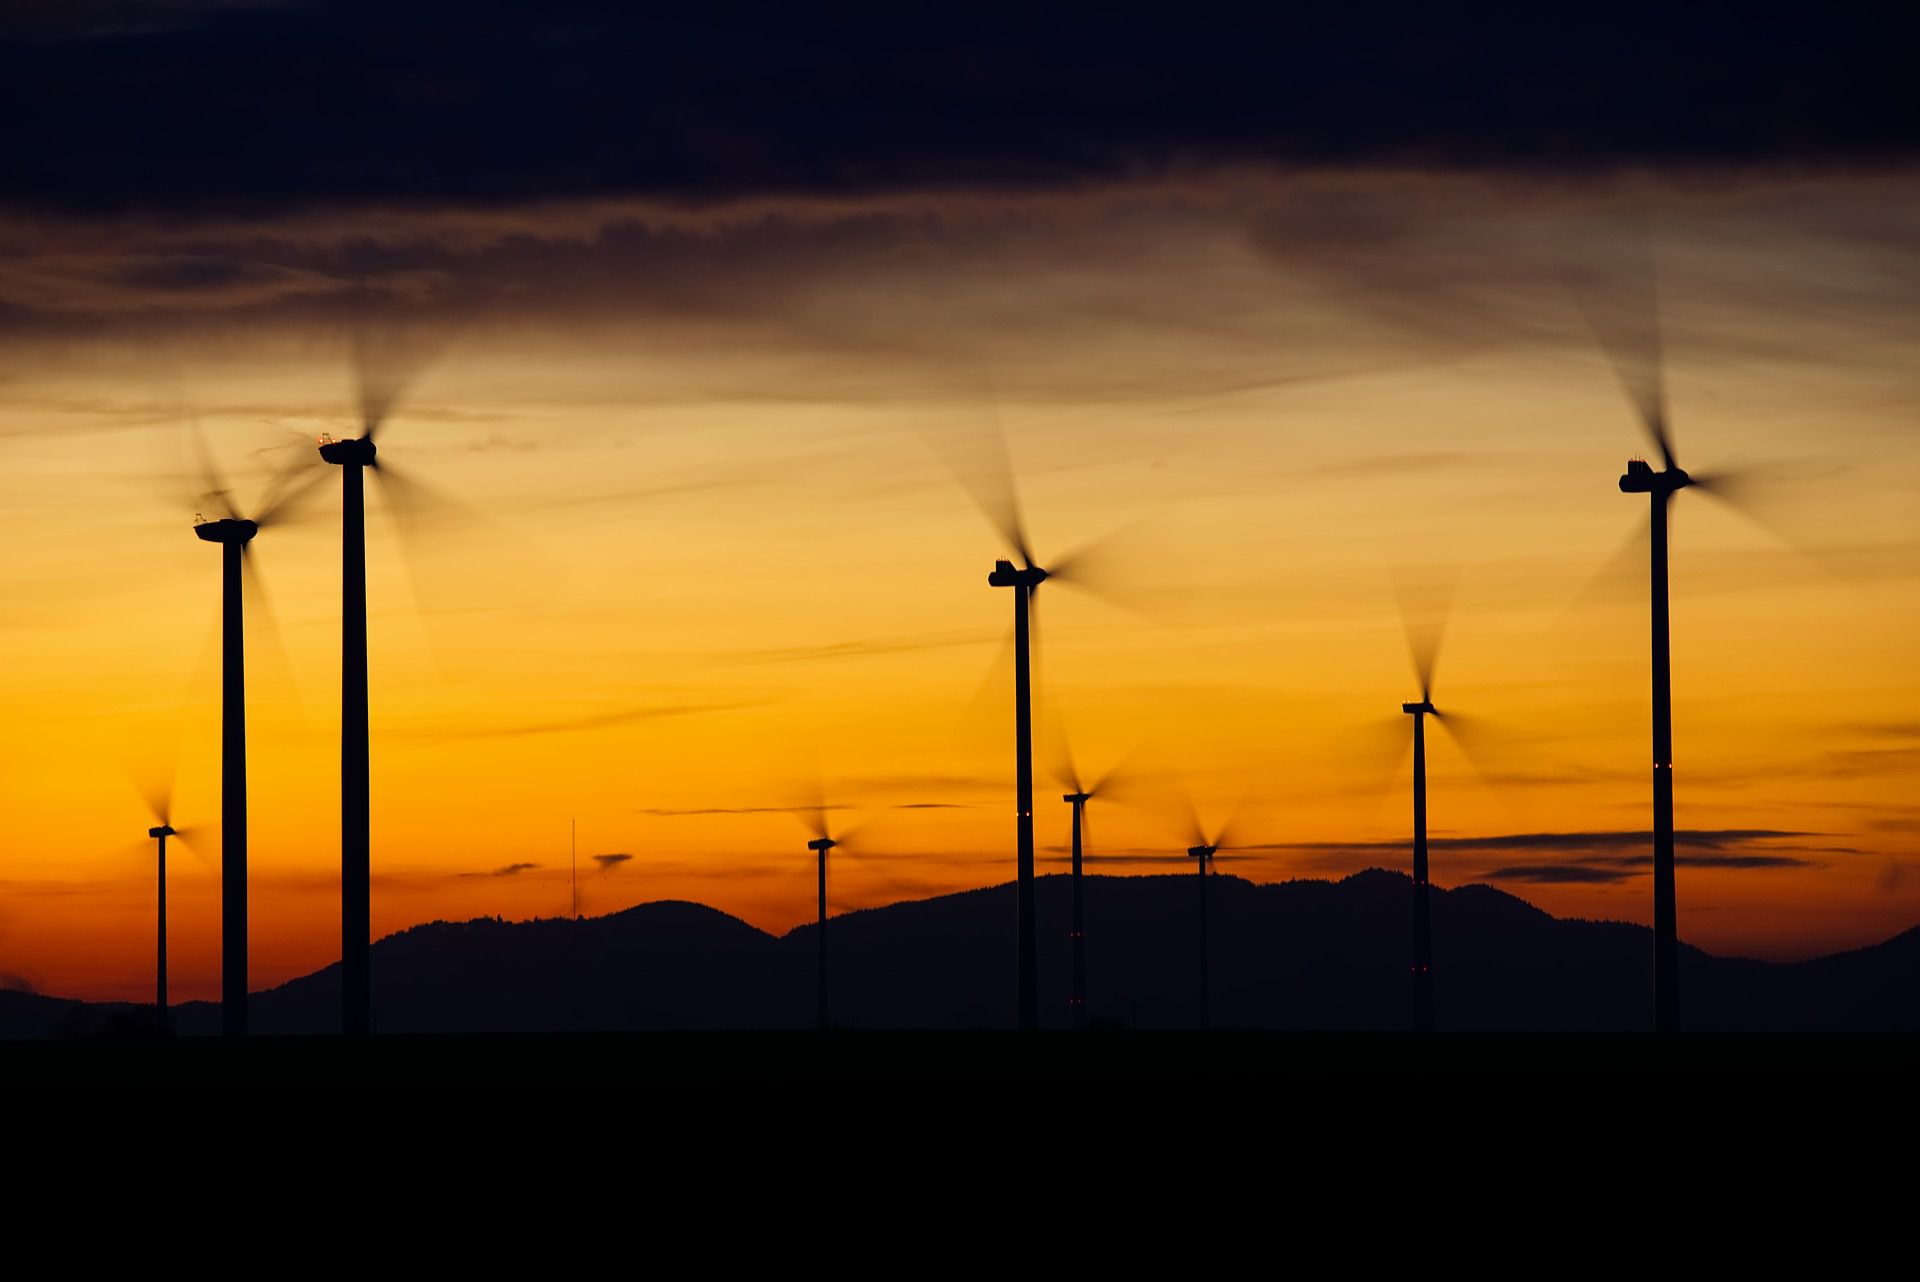 Wind farm with turbines spinning quickly at sunset.